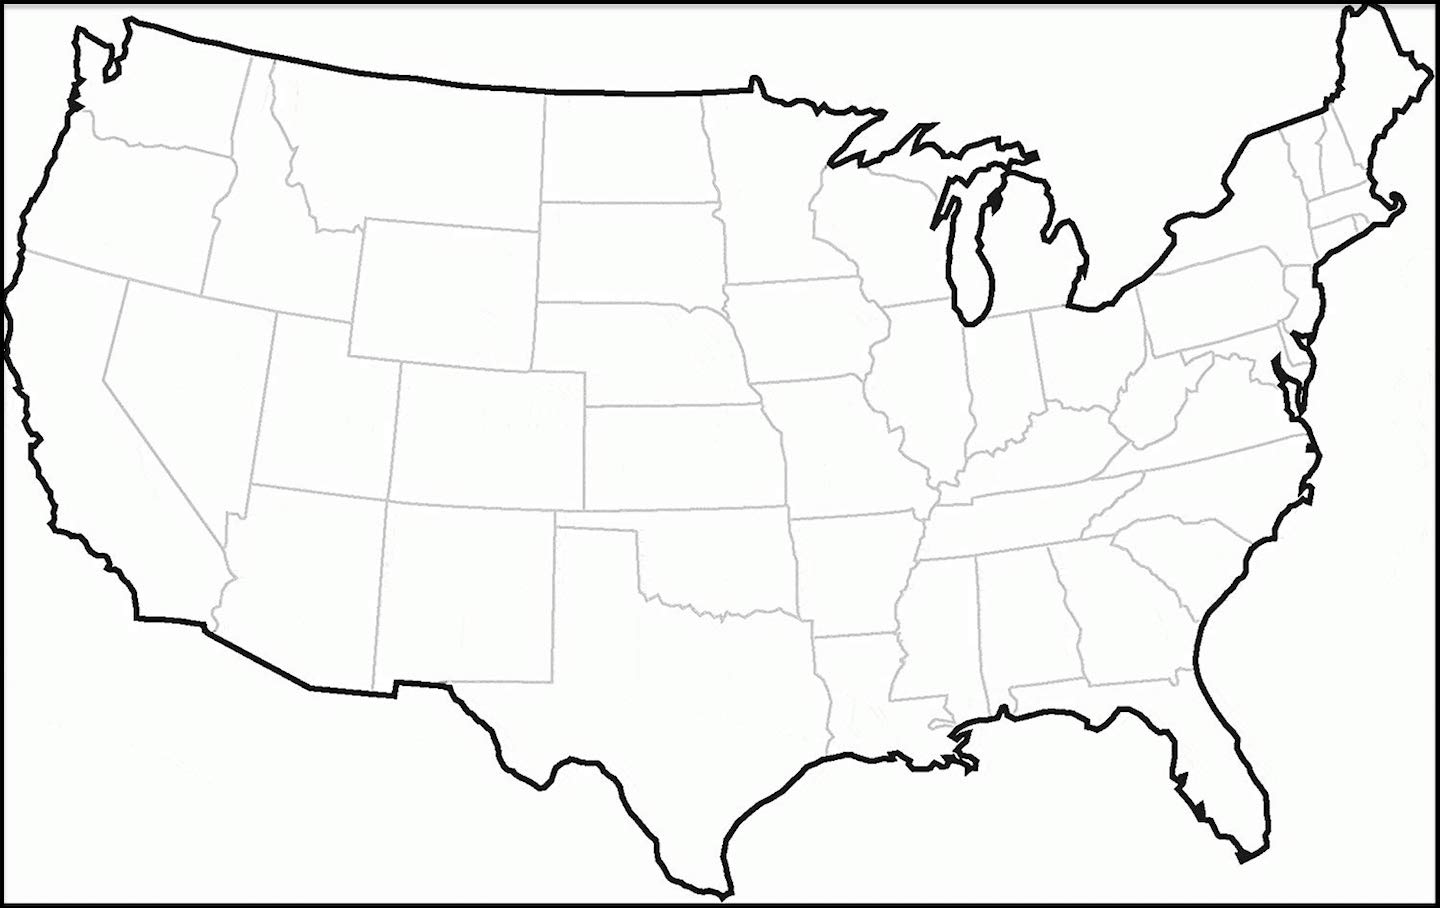 Color it with a pattern (dots, stripes, etc.). Us Map Collection With National Maps Coloring Pages And More